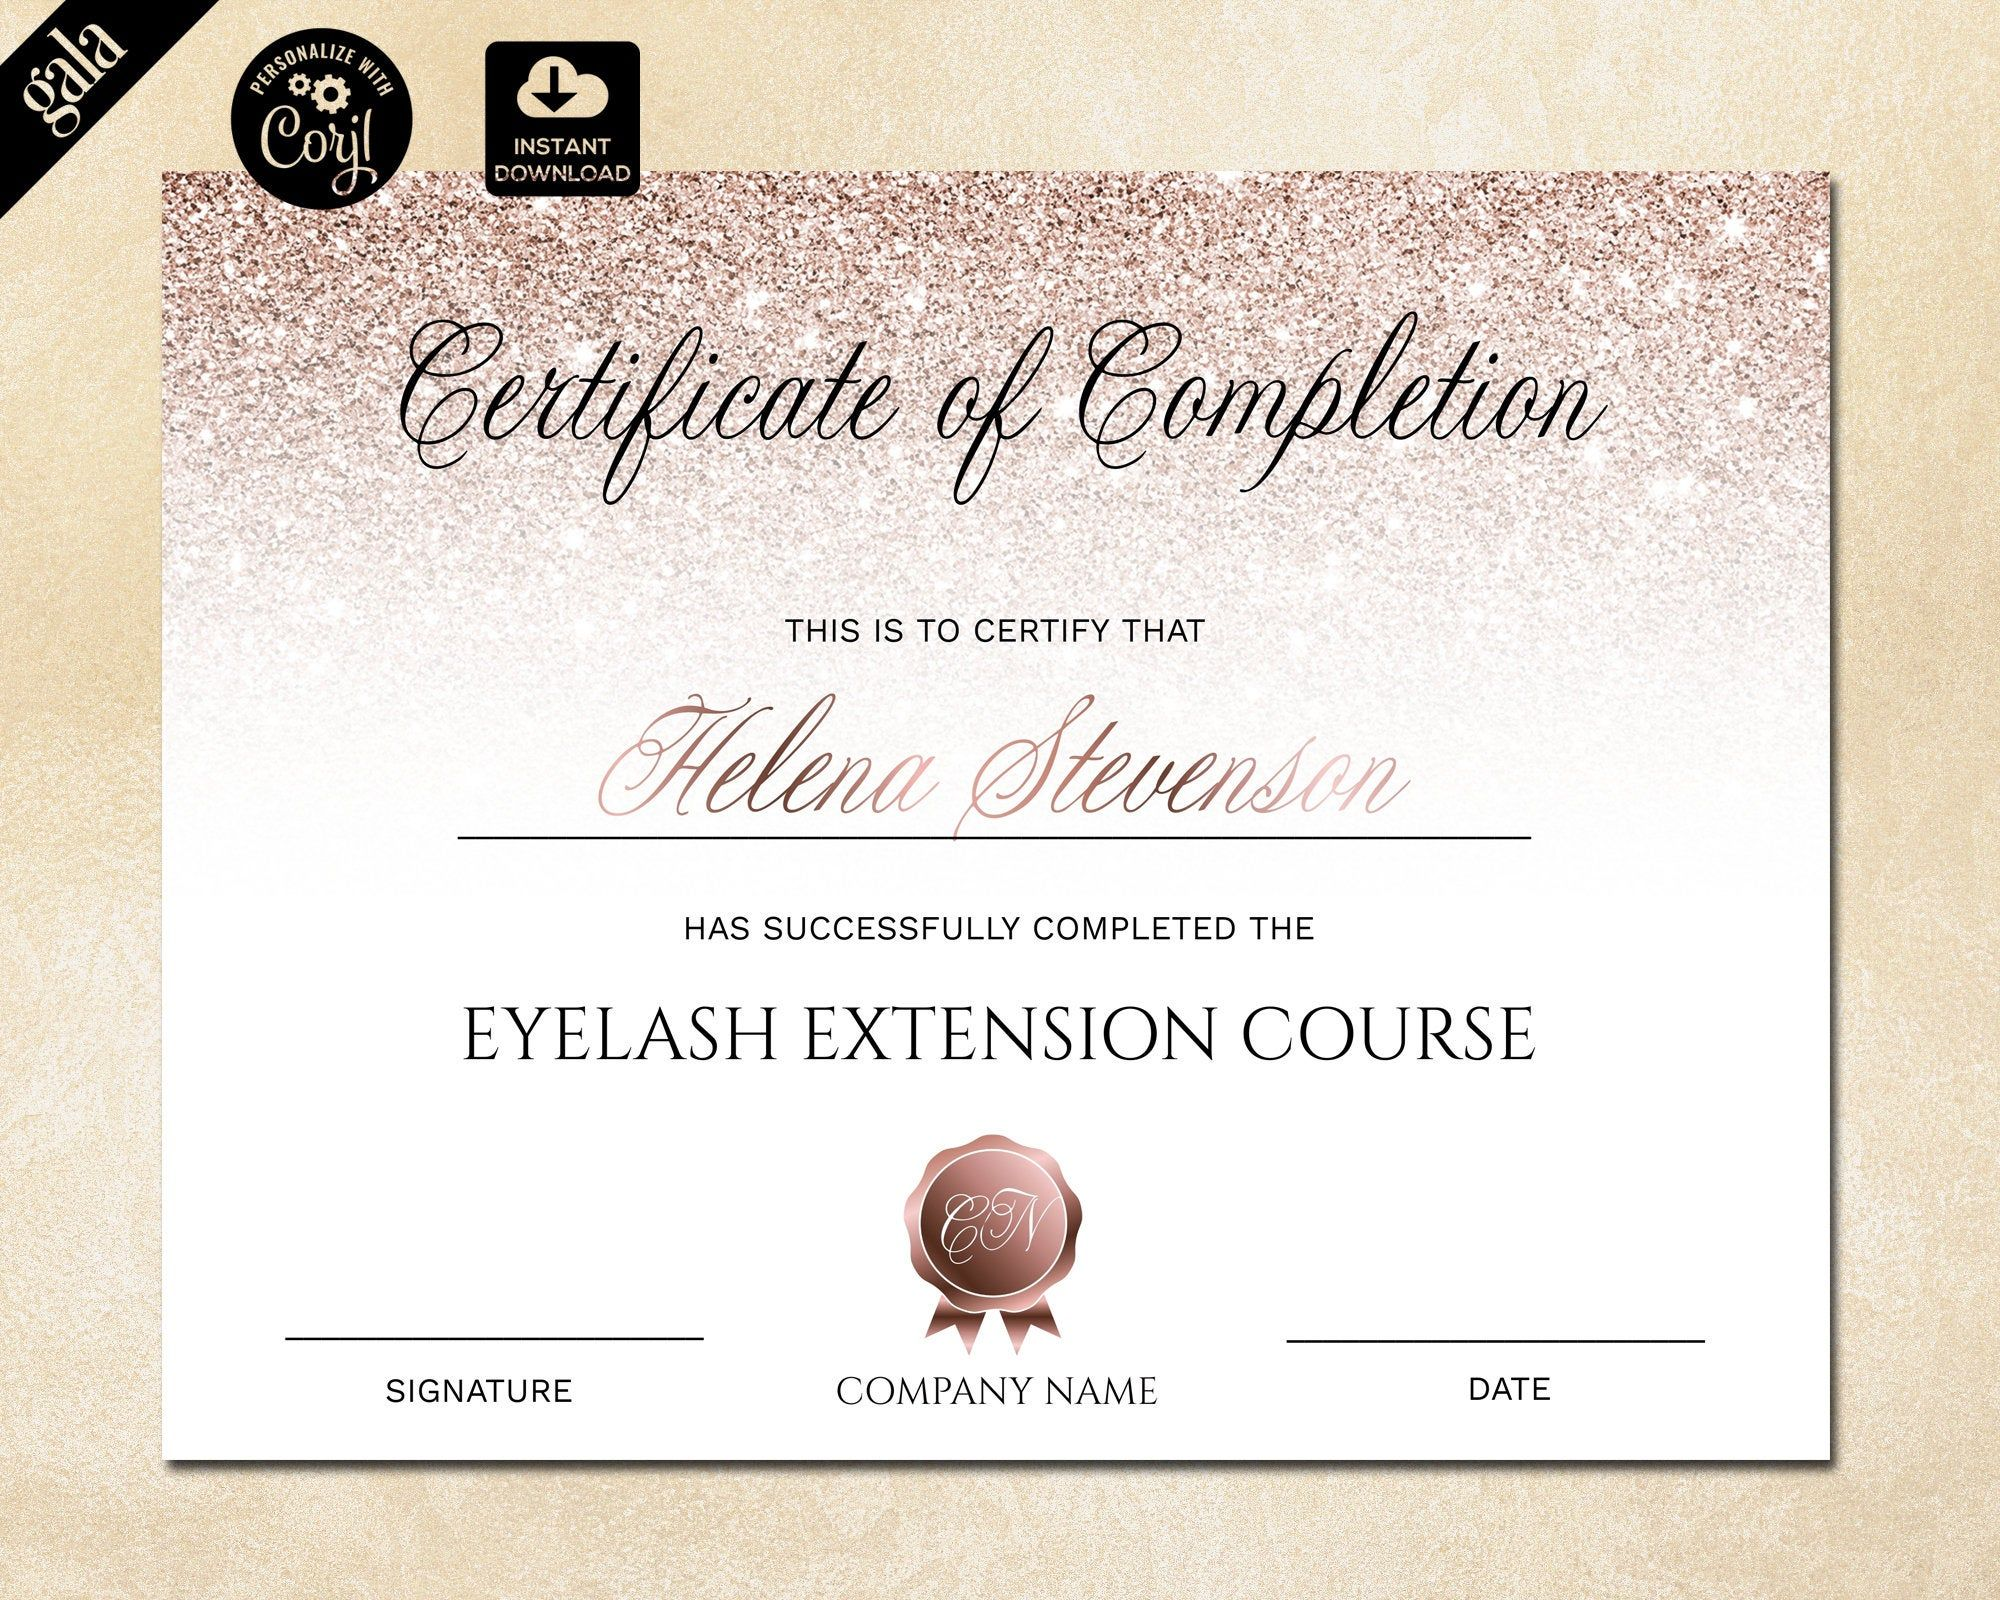 Certificate Of Completion Lashes Certificate Template Rose Etsy Certificate Of Completion Certificate Templates Certificate Of Completion Template Make a certificate of completion